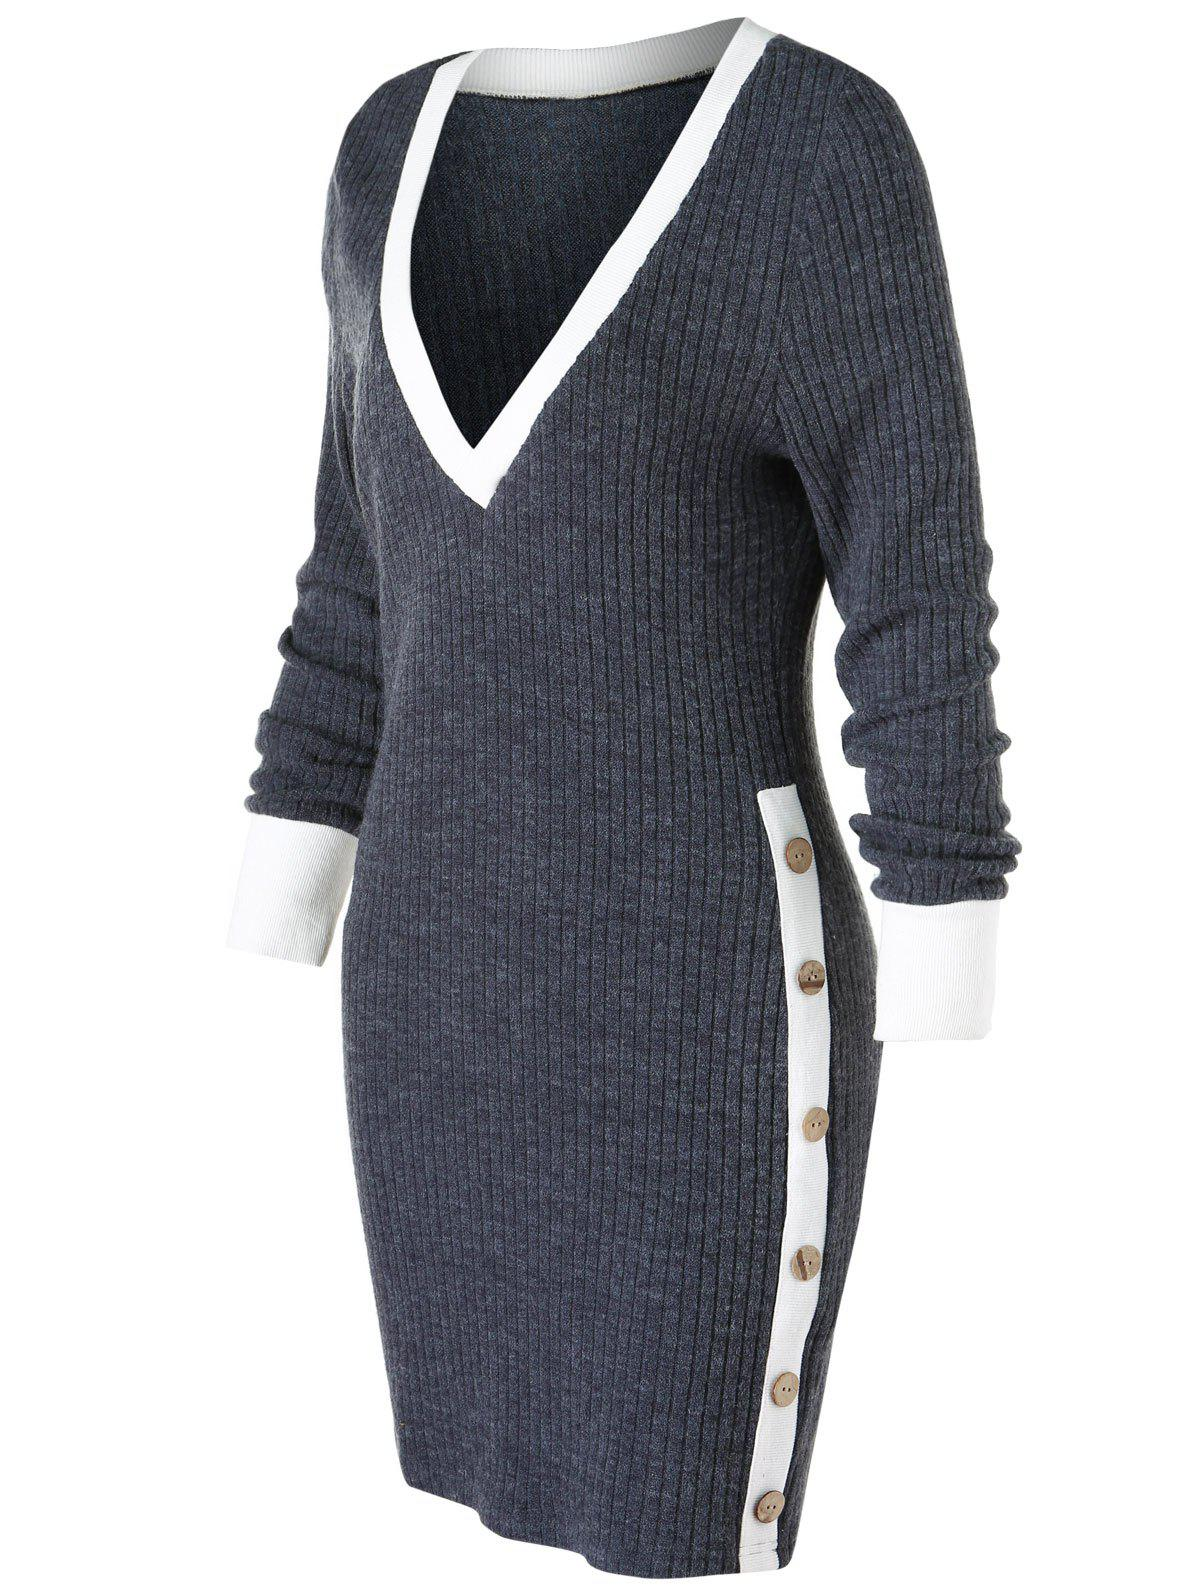 Trendy Low Cut Contrast Trim Knit Bodycon Dress